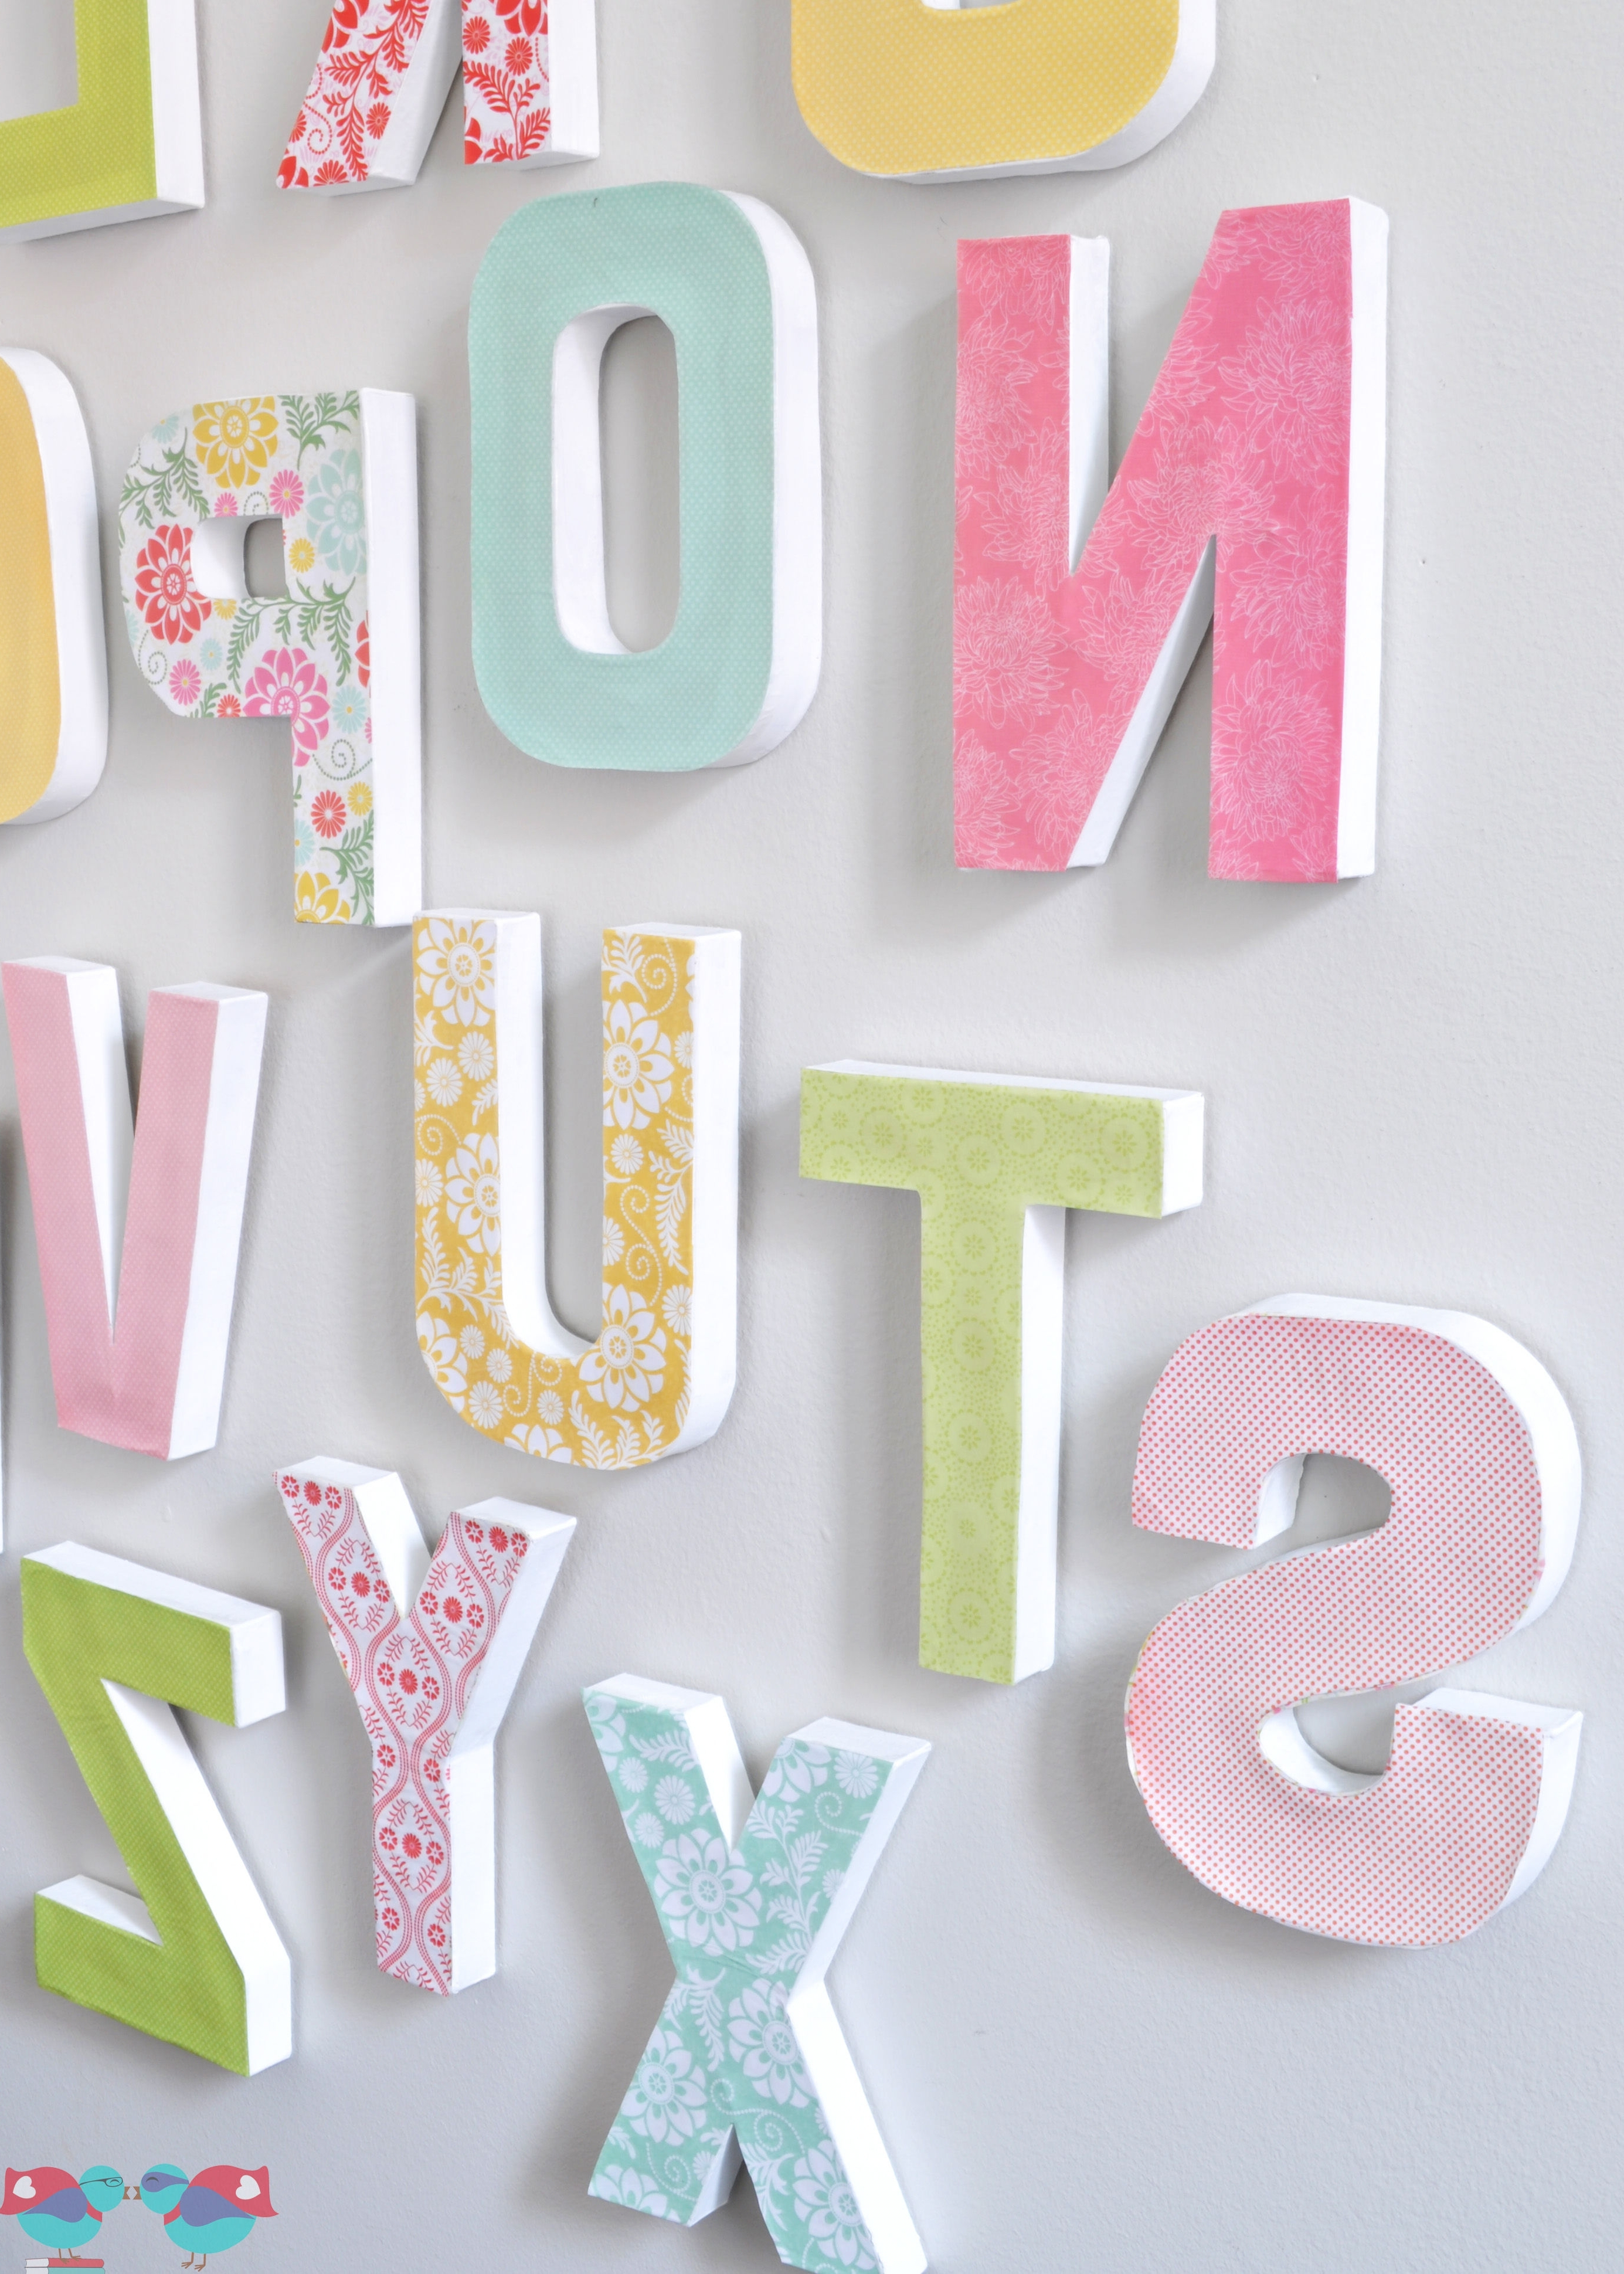 Widely Used Letter Wall Art Intended For Letter Wall Art Pictures, Photos, And Images For Facebook, Tumblr (View 13 of 15)